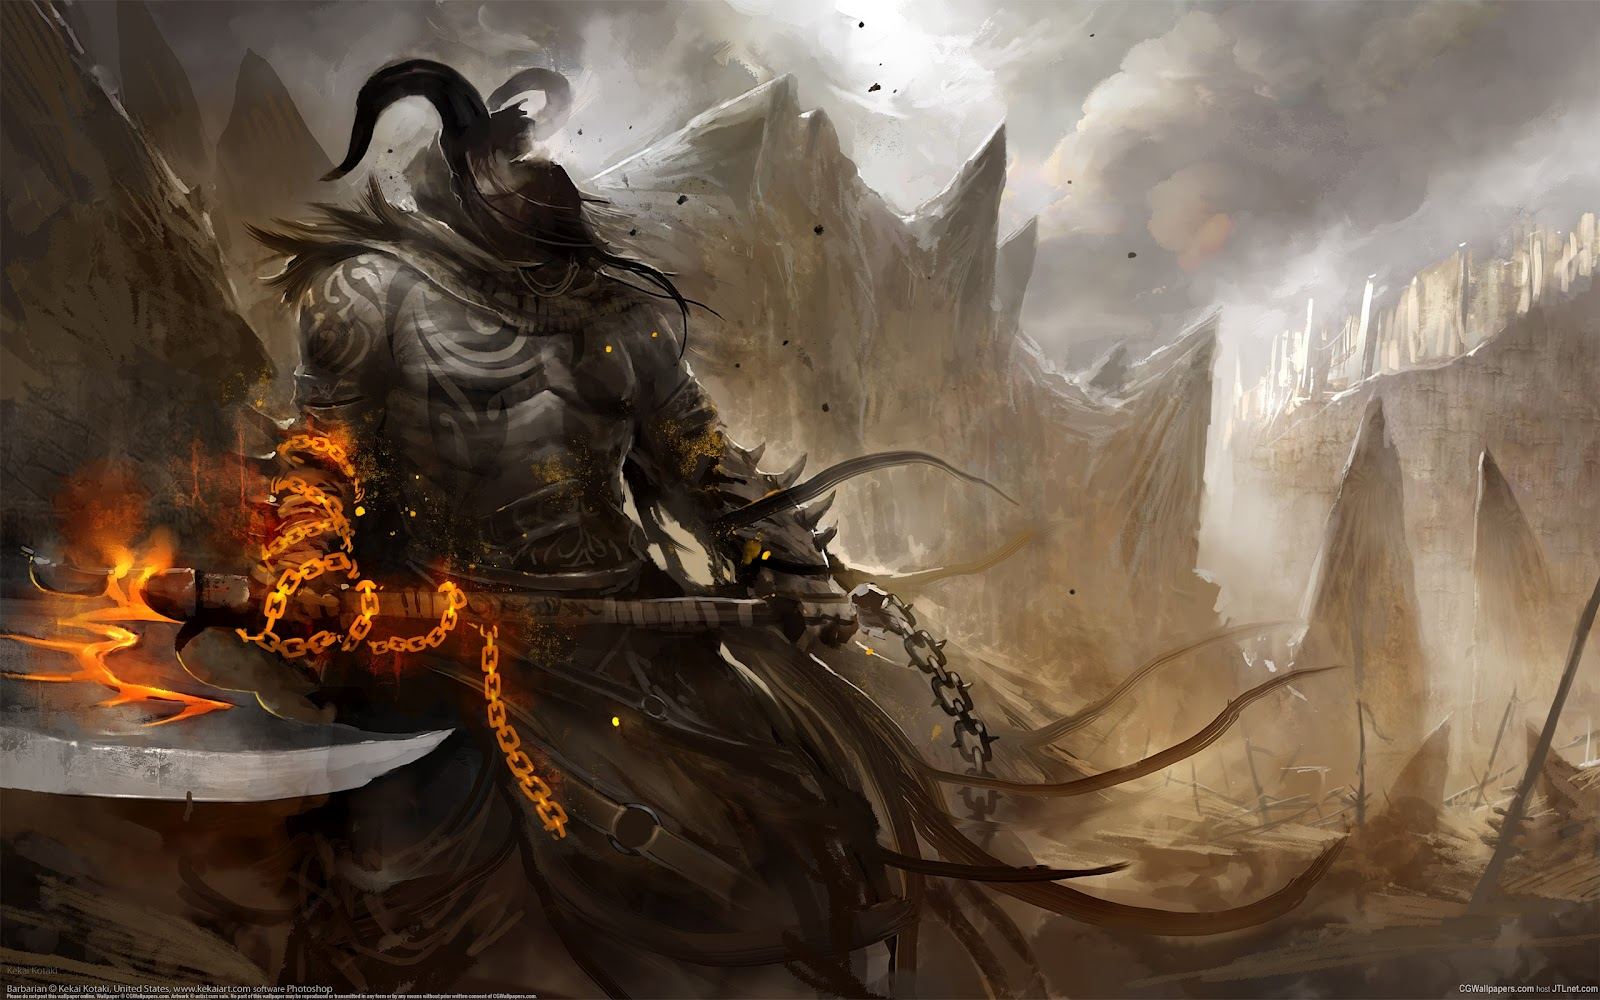 http://3.bp.blogspot.com/-boJ2gshP-EA/T4dTd2AsmcI/AAAAAAAAACo/FGDrZR4v21Y/s1600/14462_1_other_wallpapers_warrior_axe_fantasy.jpg